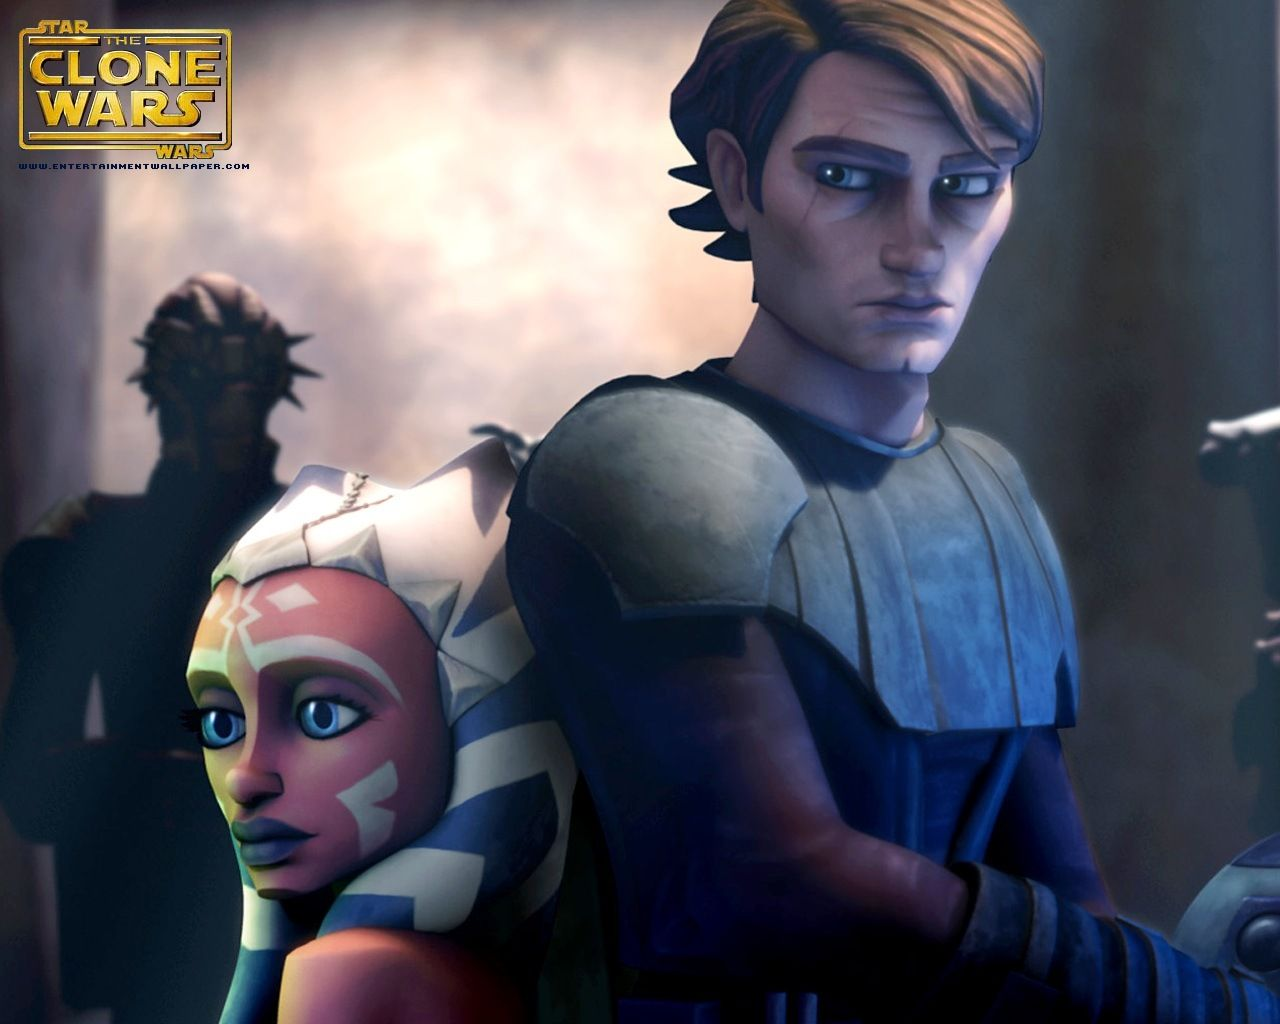 star wars the clone wars likely to depart from cartoon network in